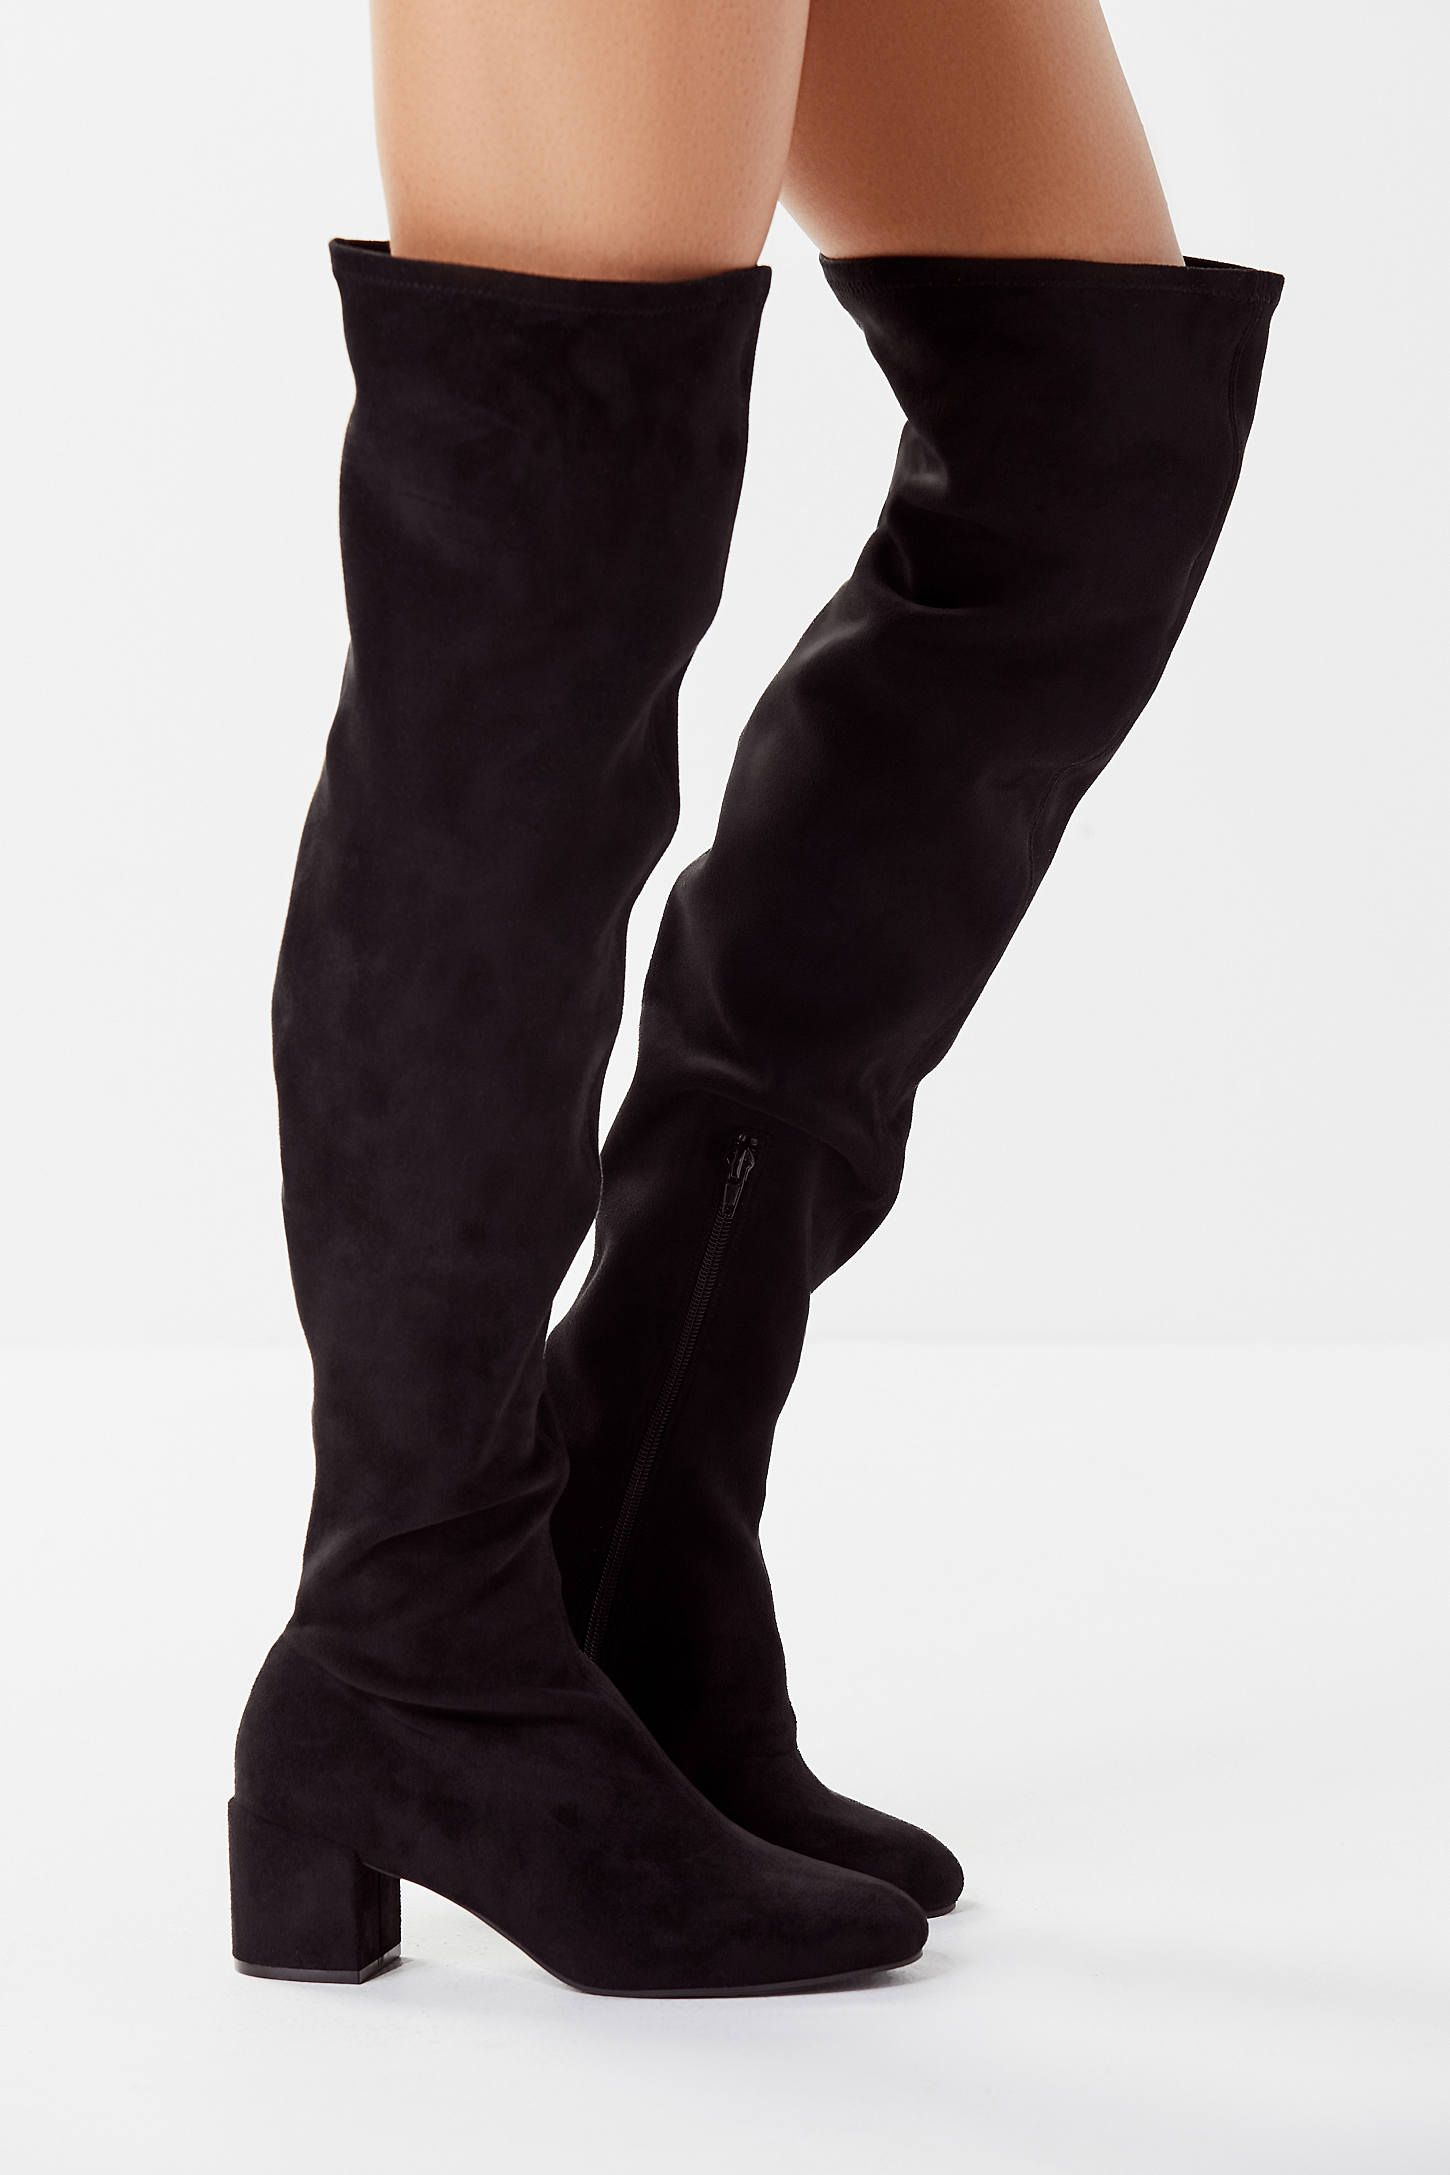 e08f00f9bff9 Thelma Over-The-Knee Boot